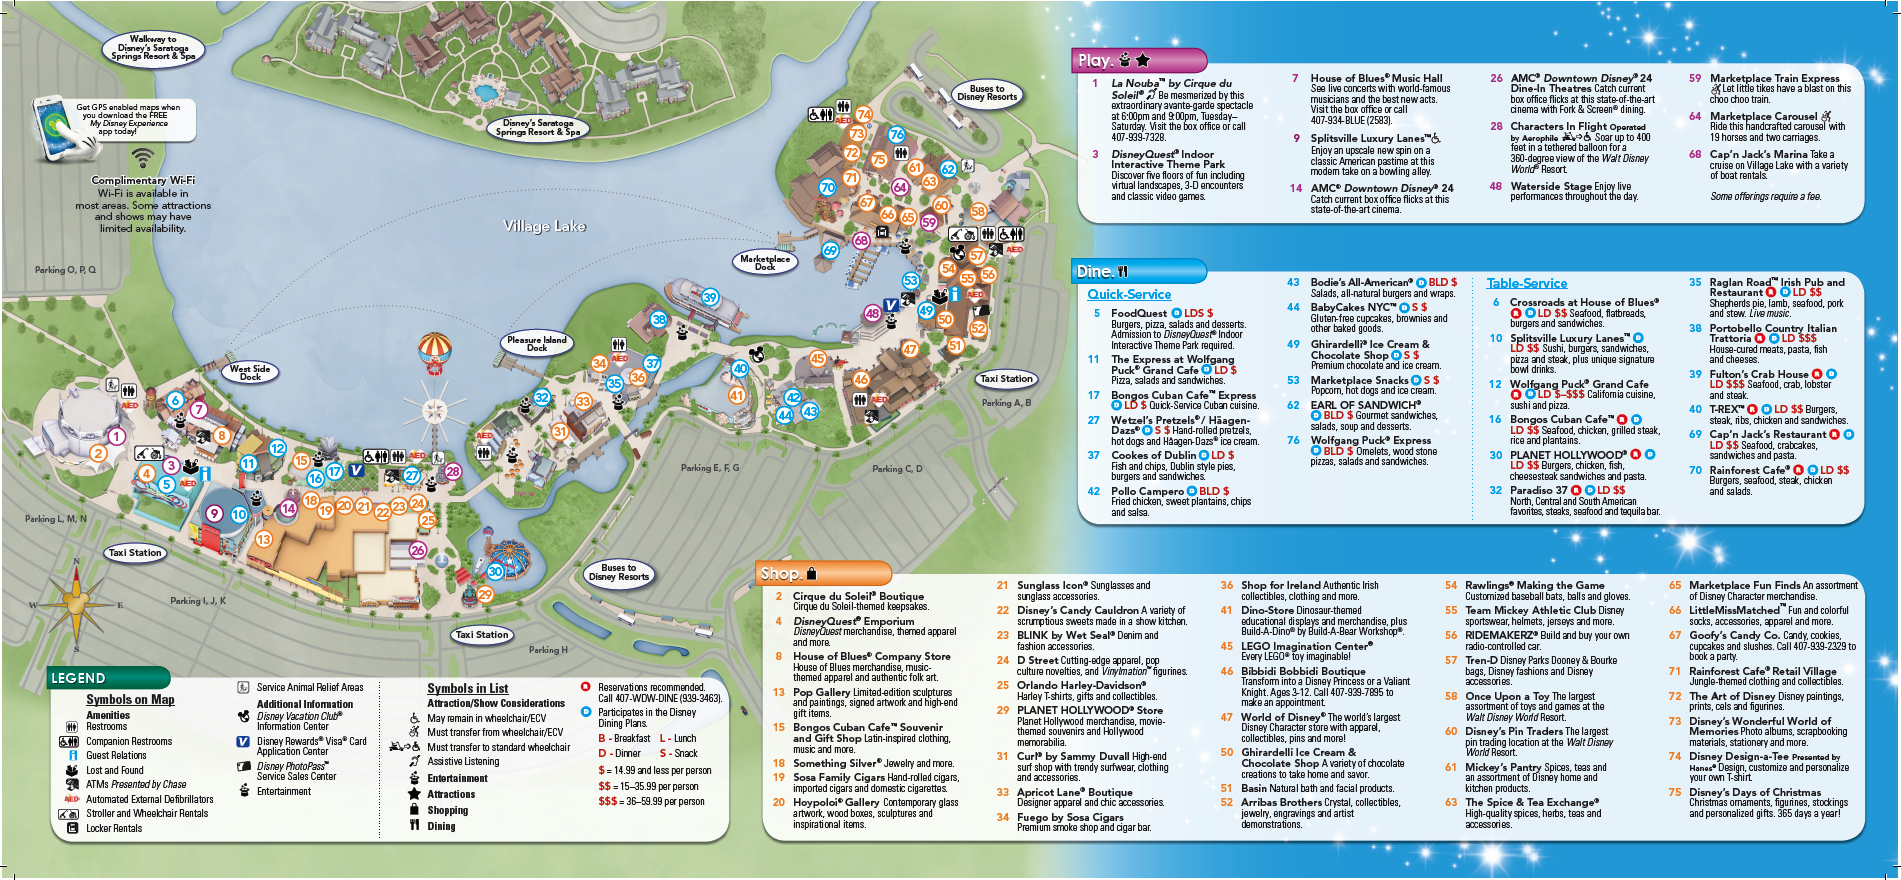 Backside of Downtown Disney brochure   Disney map, Disney ... on disney hotel orlando fl map, downtown orlando map, planet hollywood parking map, animal kingdom parking map, wet n wild parking map, 2014 disney world resort map, walt disney world map, downtown indianapolis parking map, busch gardens tampa parking map, disney boardwalk parking map, legoland florida parking map, disney hollywood studios parking map, daytona beach parking map, downtown louisville parking map, downtown phoenix parking map, disneyland parking map, disney world parking map, knott's berry farm parking map, los angeles parking map, new york city parking map,